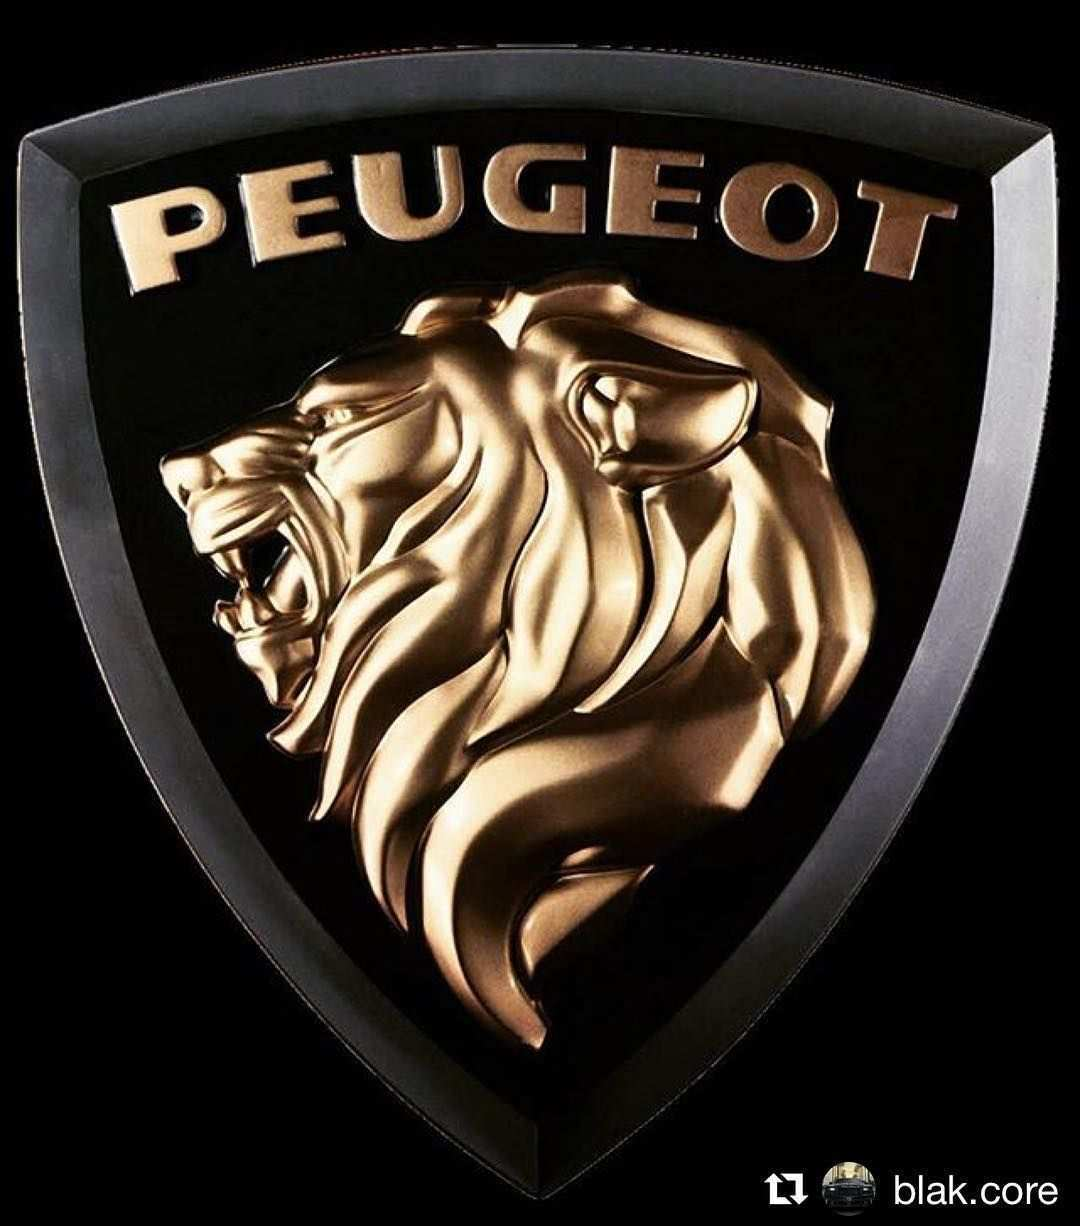 Step Back In The Past With This Great Black And Gold Peugeot Logo From 1960 Peugeot Regram 1960 Logo Black Gold Peugeot Luxury Car Logos Car Logos